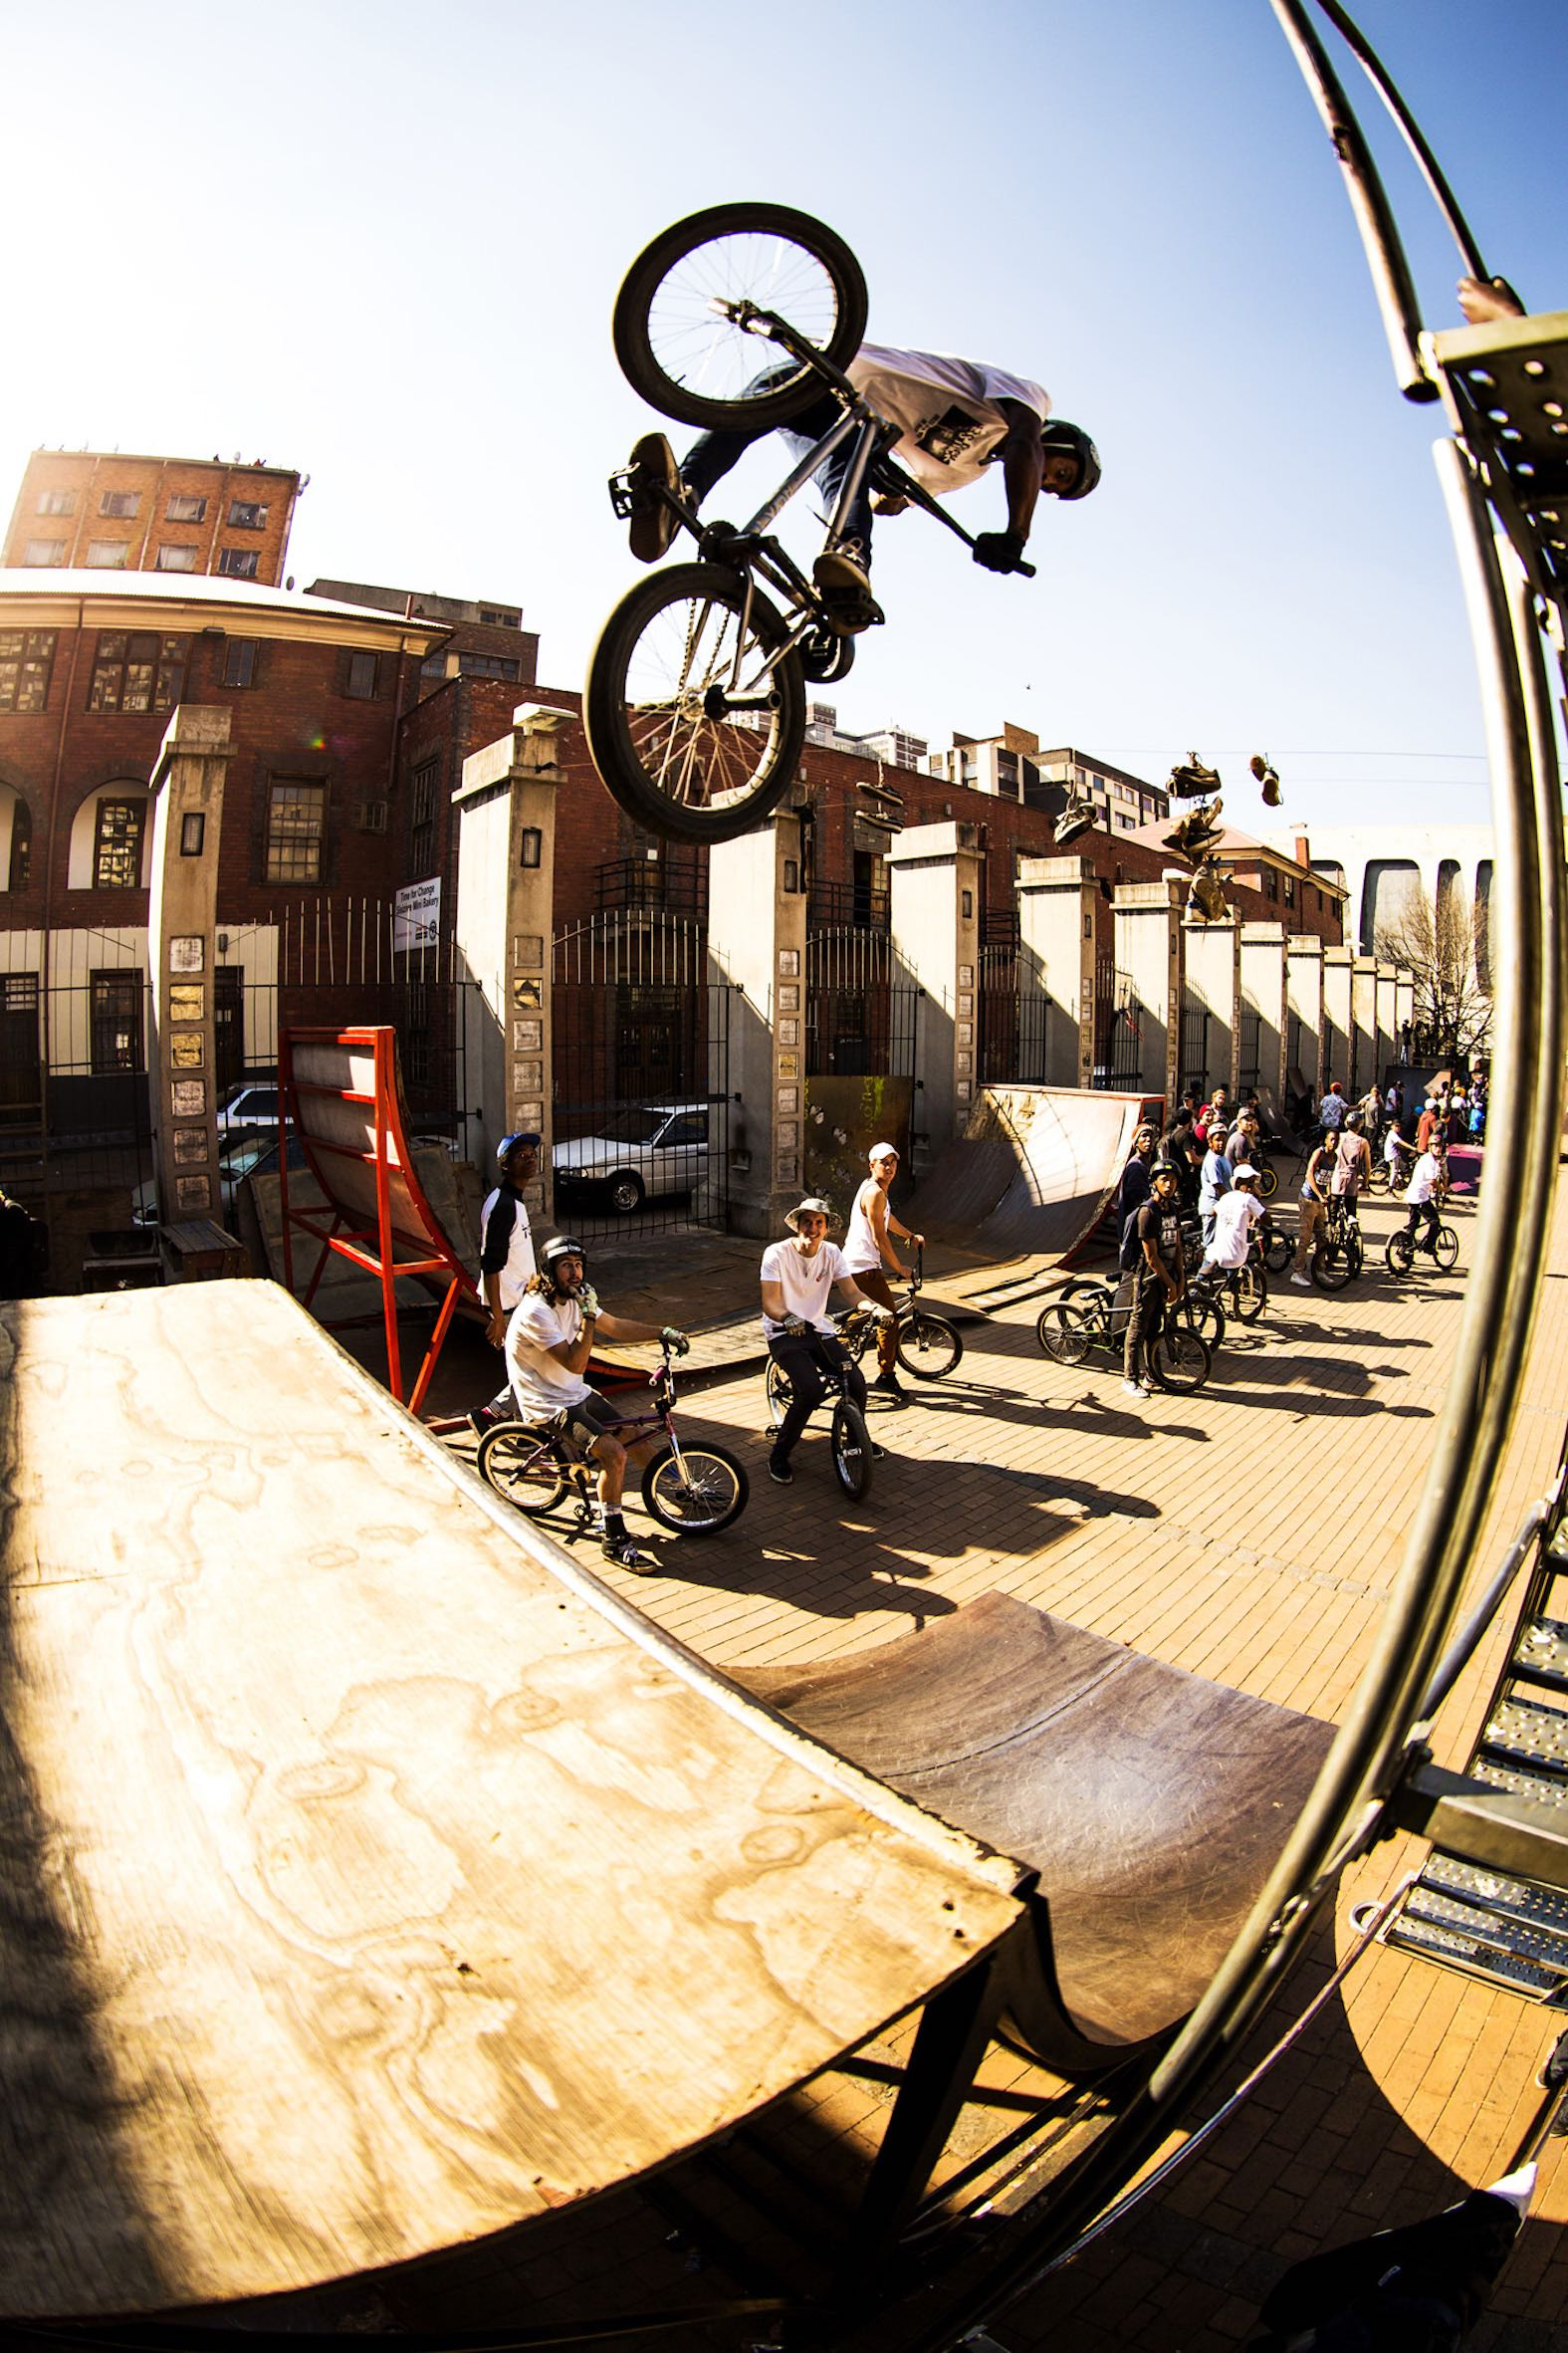 BMX action at its best in the heart of Joburg